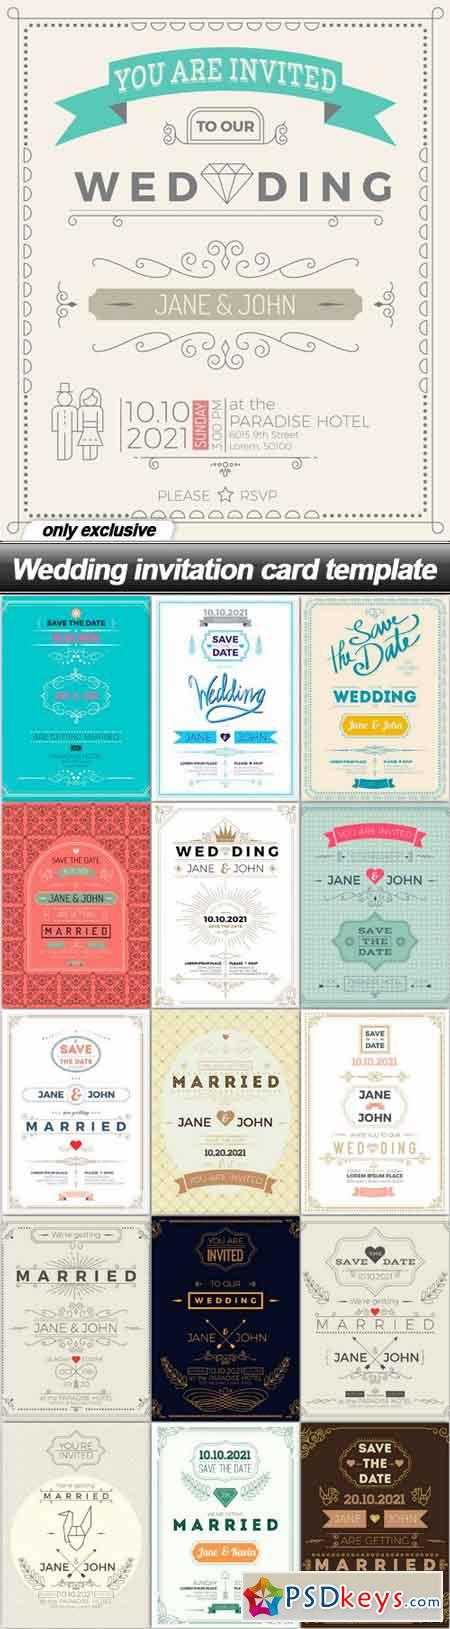 Wedding Invitation Card Template 16 Eps Free Download